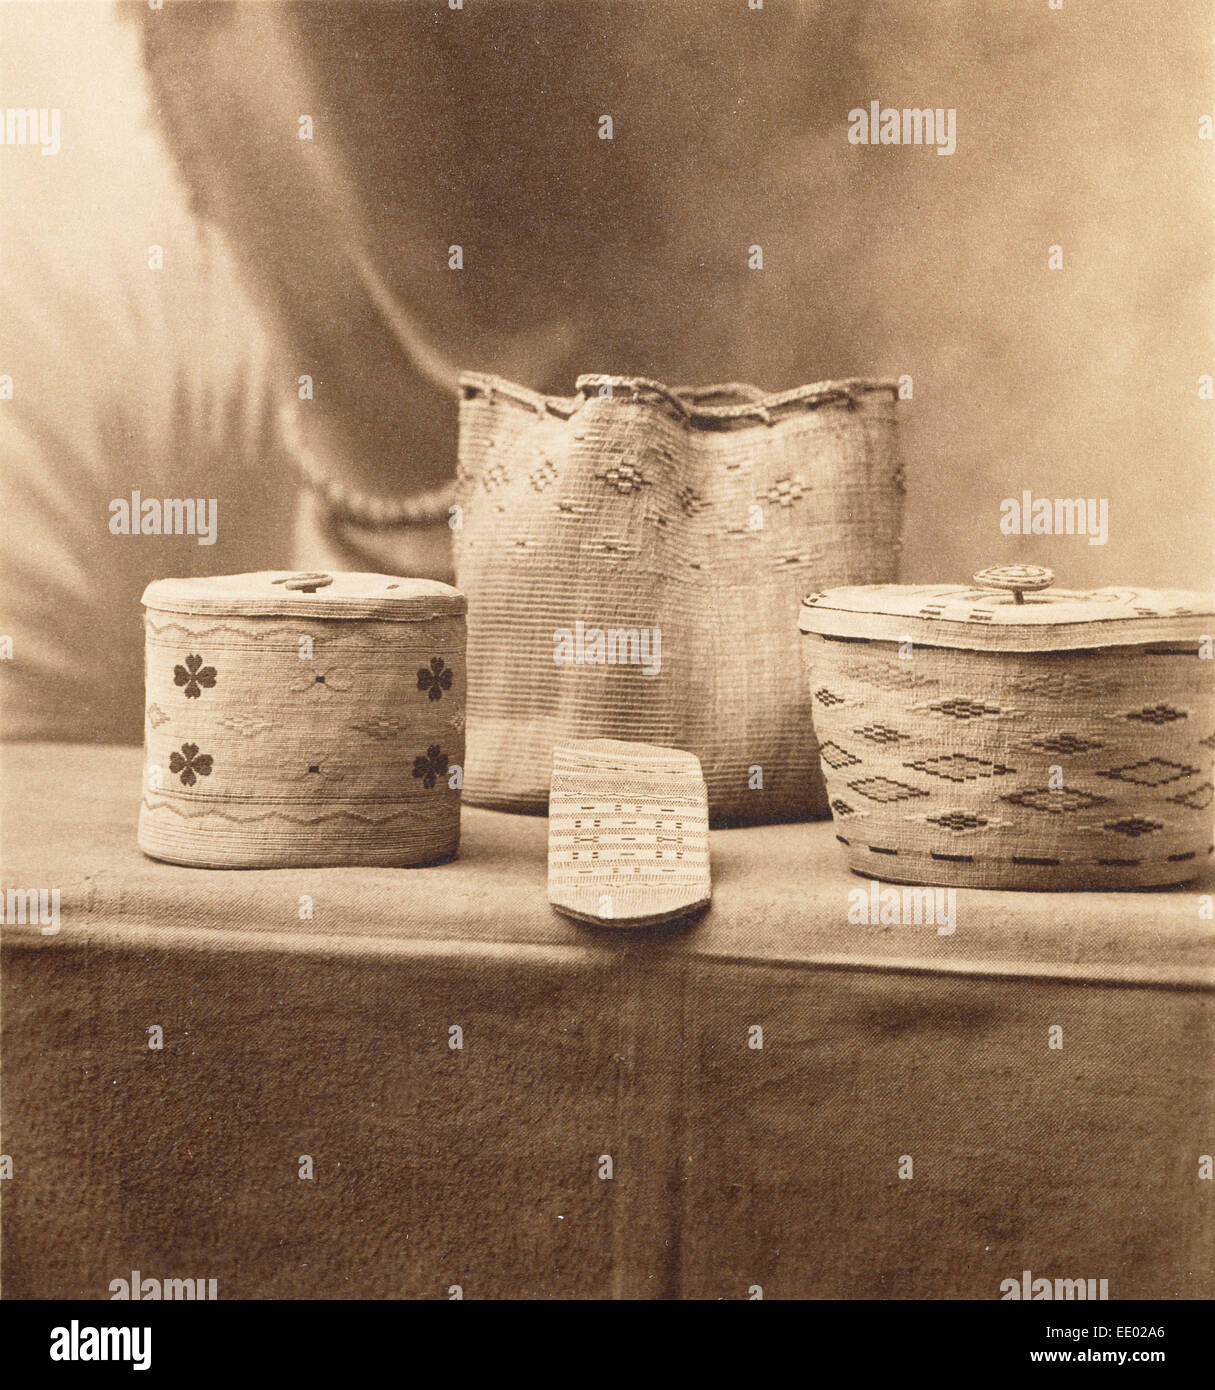 [Baskets]; A.C. Vroman, American, 1856 - 1916; about 1898; Sepia toned waxed platinum print - Stock Image